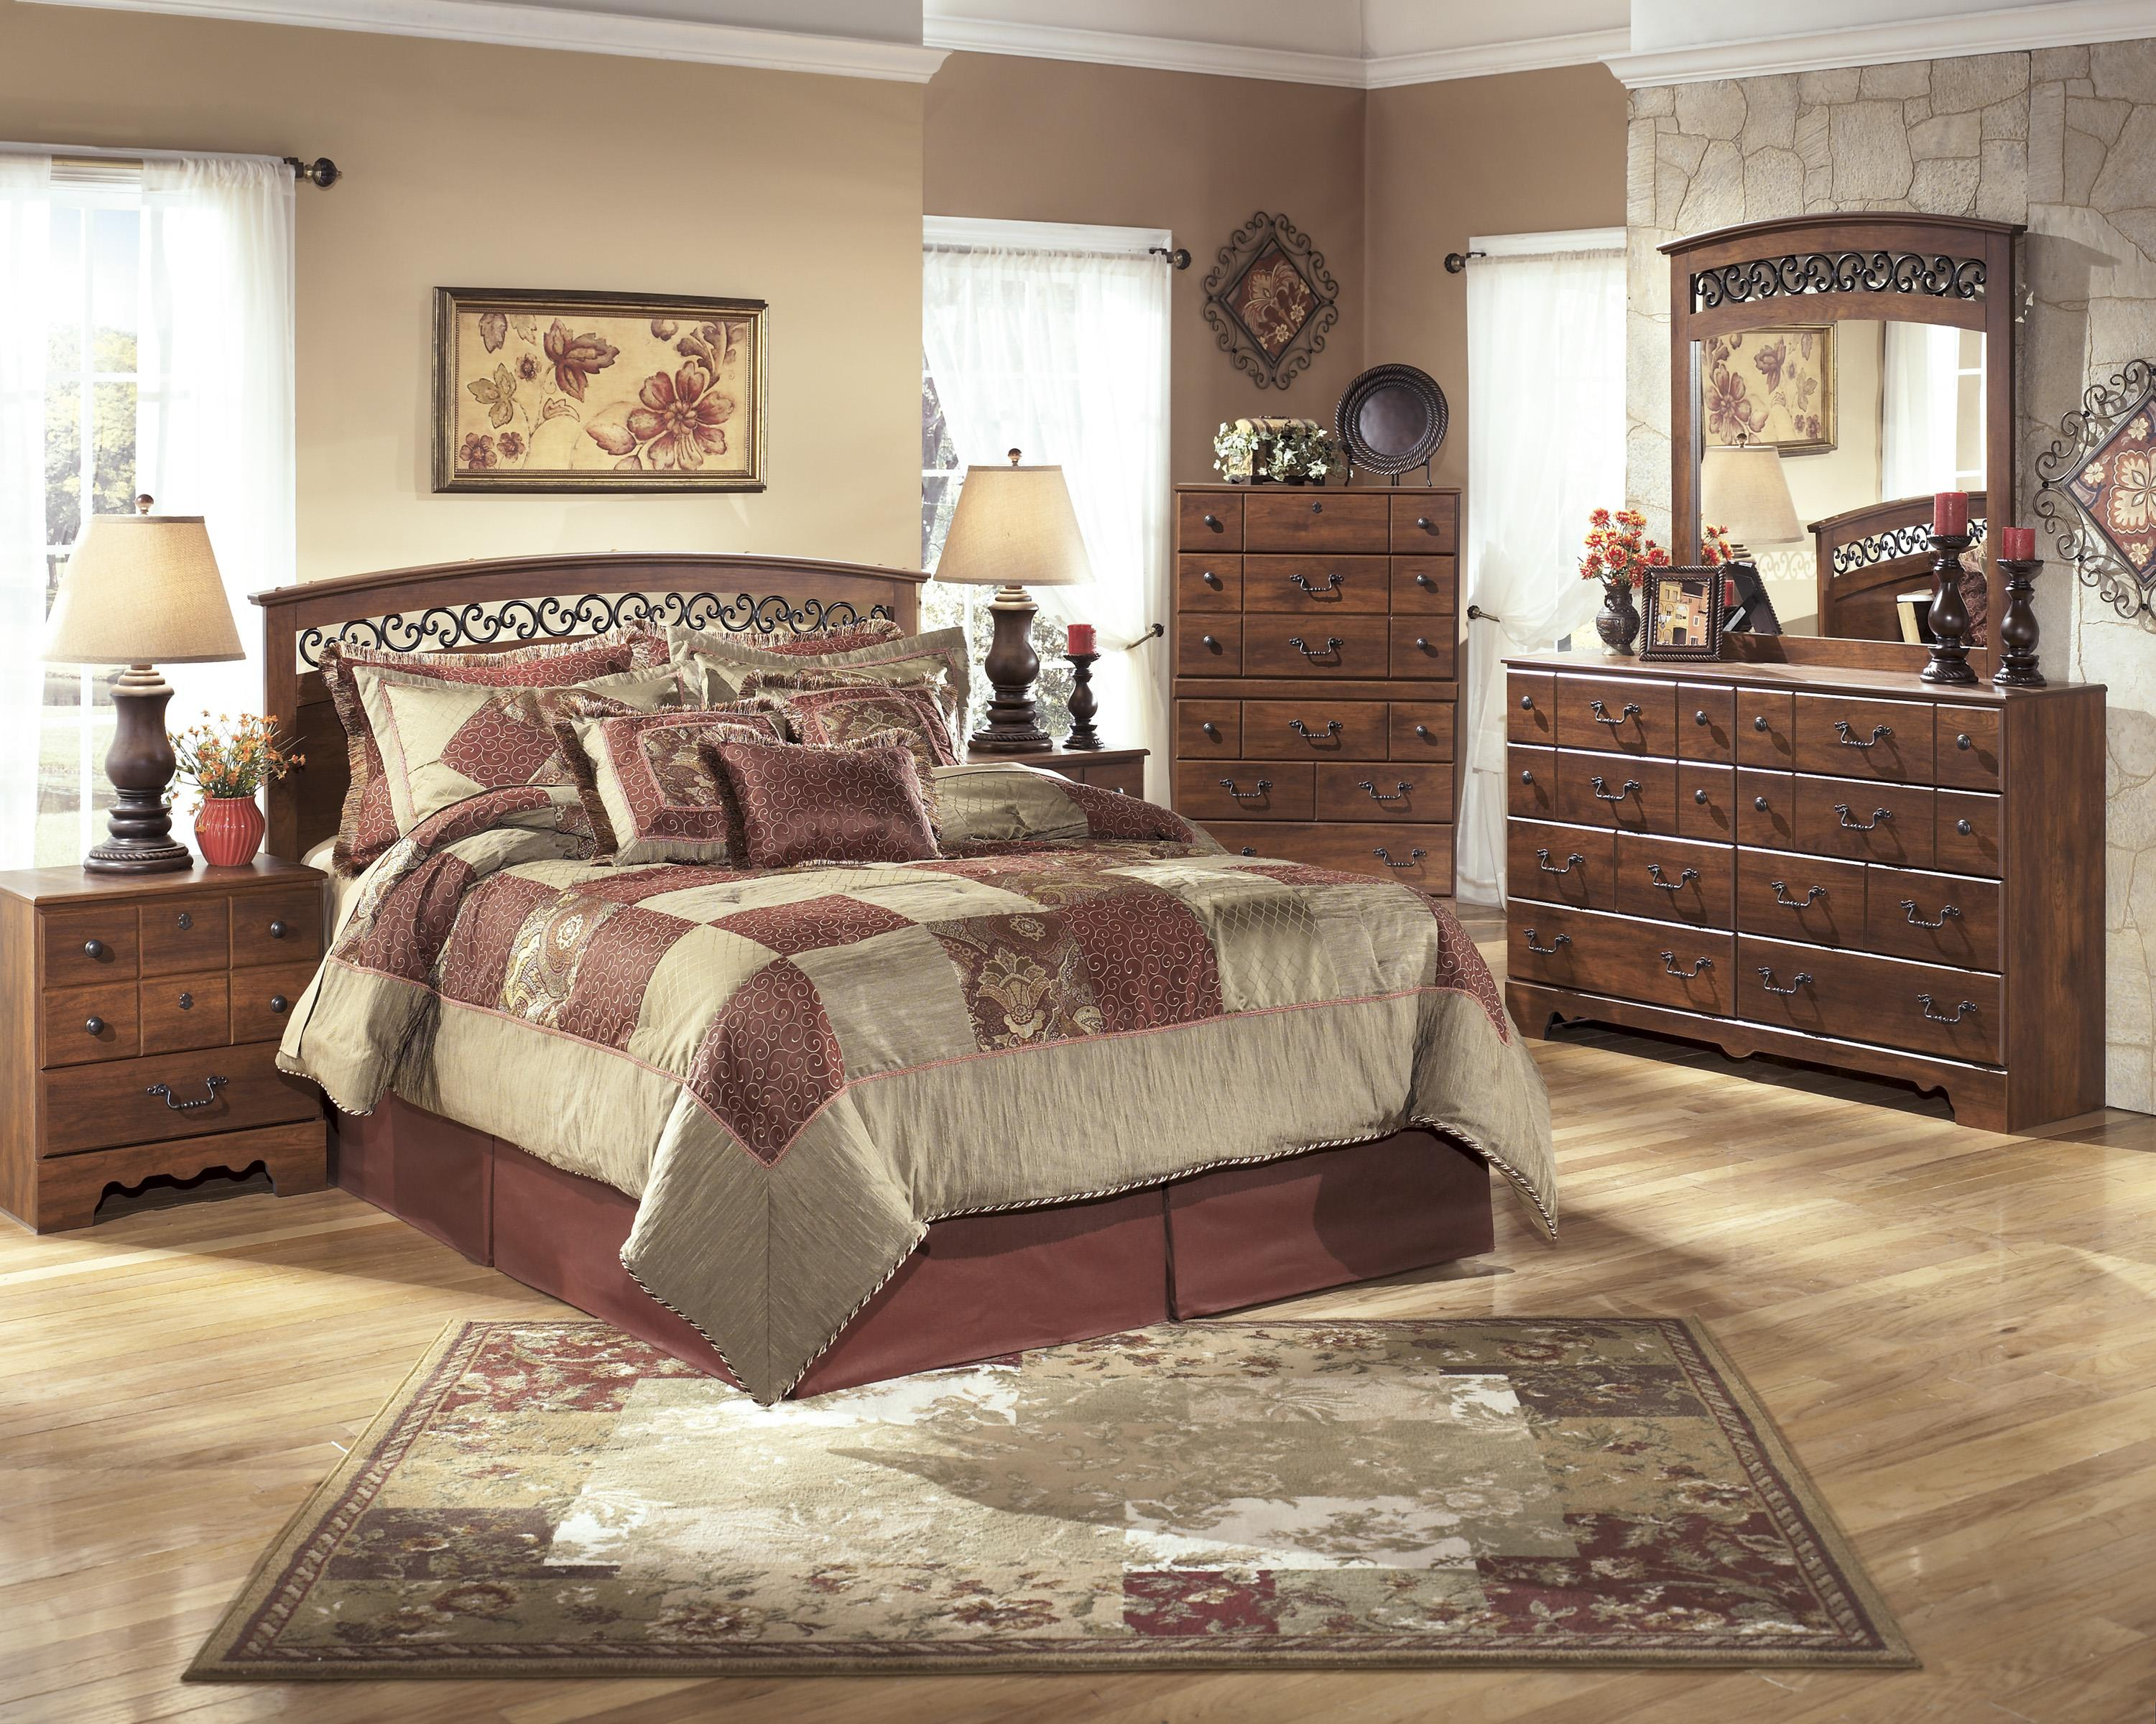 Signature Design by Ashley Timberline Queen/Full Bedroom Group - Item Number: B258 Q Bedroom Group 3